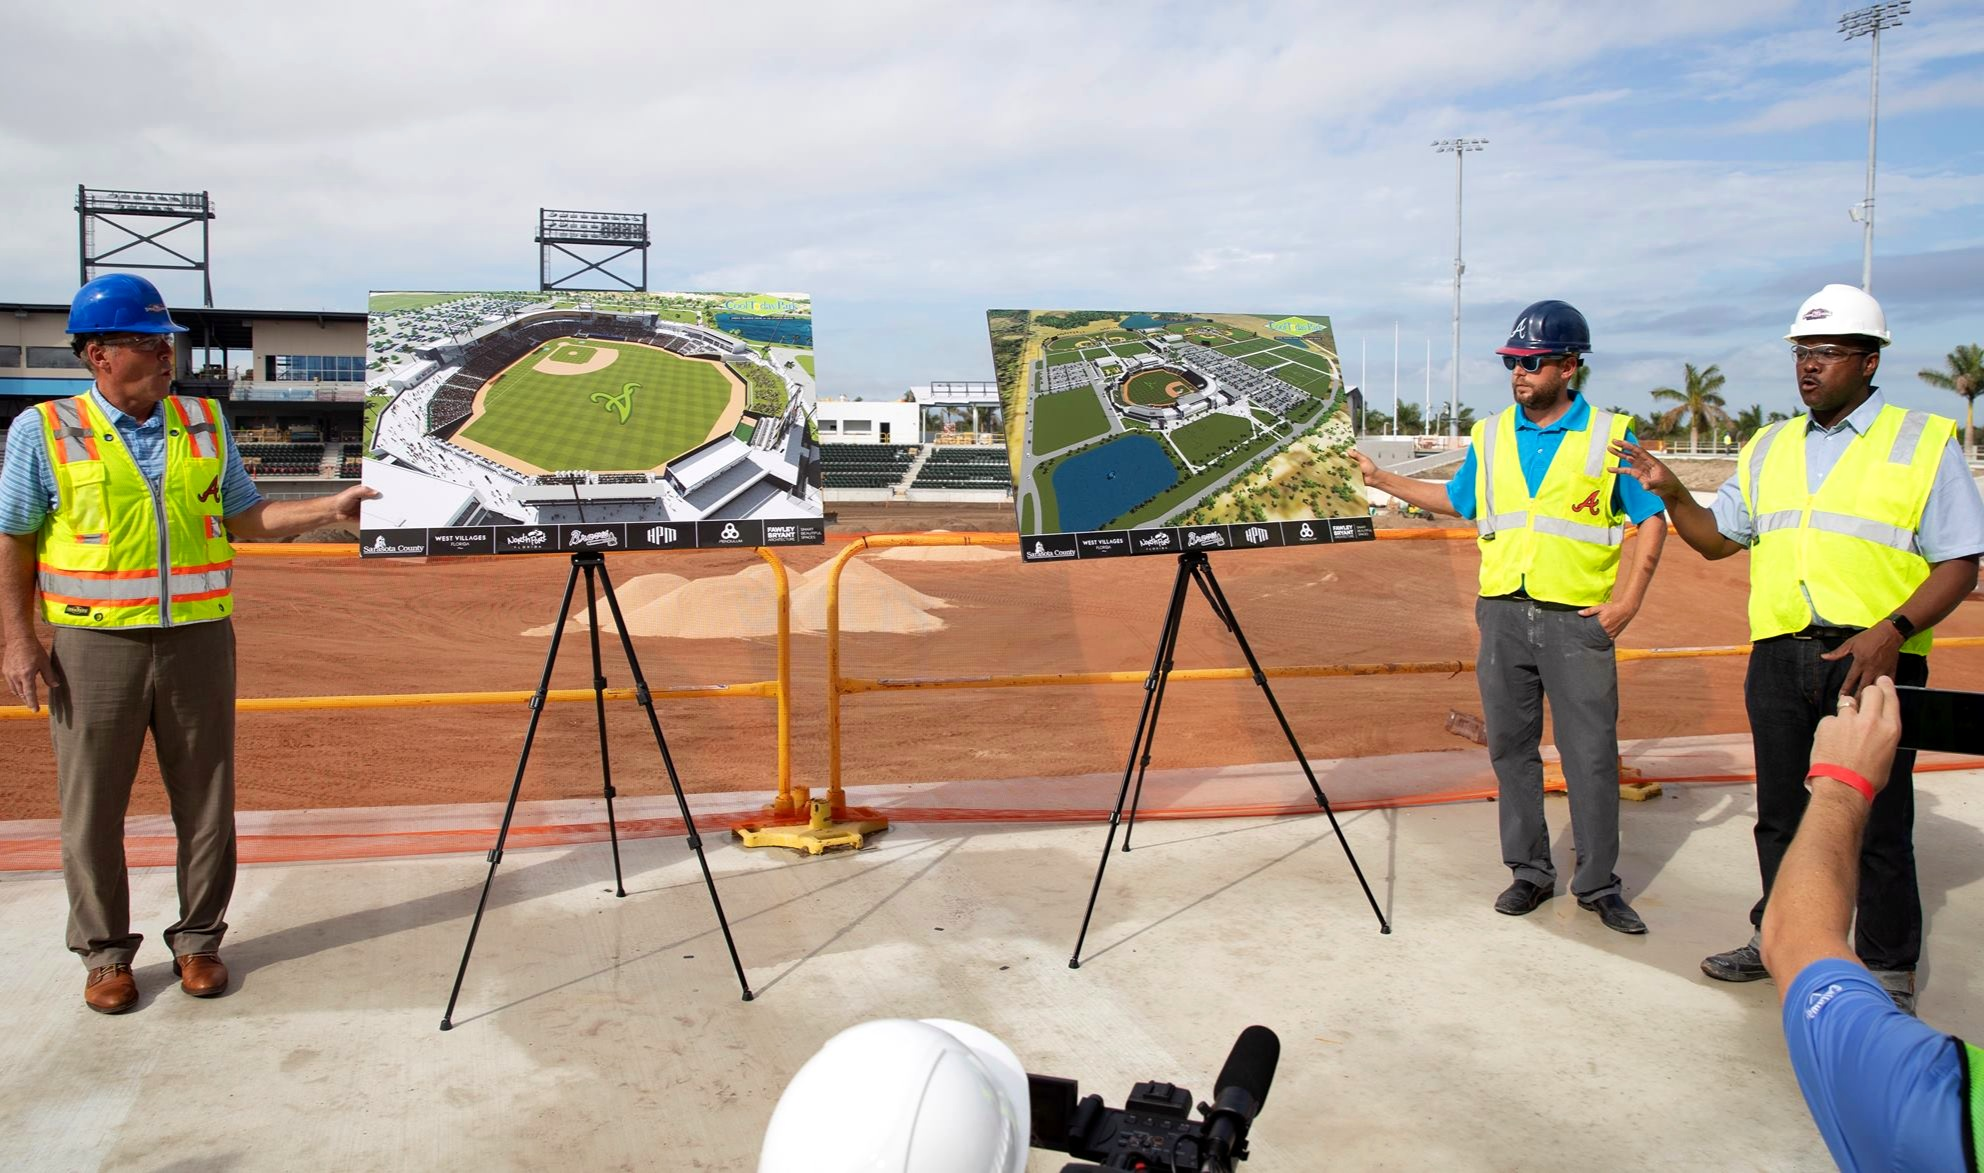 """People are going to love it… - I don't think you'll find a spring-training facility comparable. This is going to feel like the Braves and also feel like North Port.""— Jonathan Cole, Pendulum Principal/Owner"